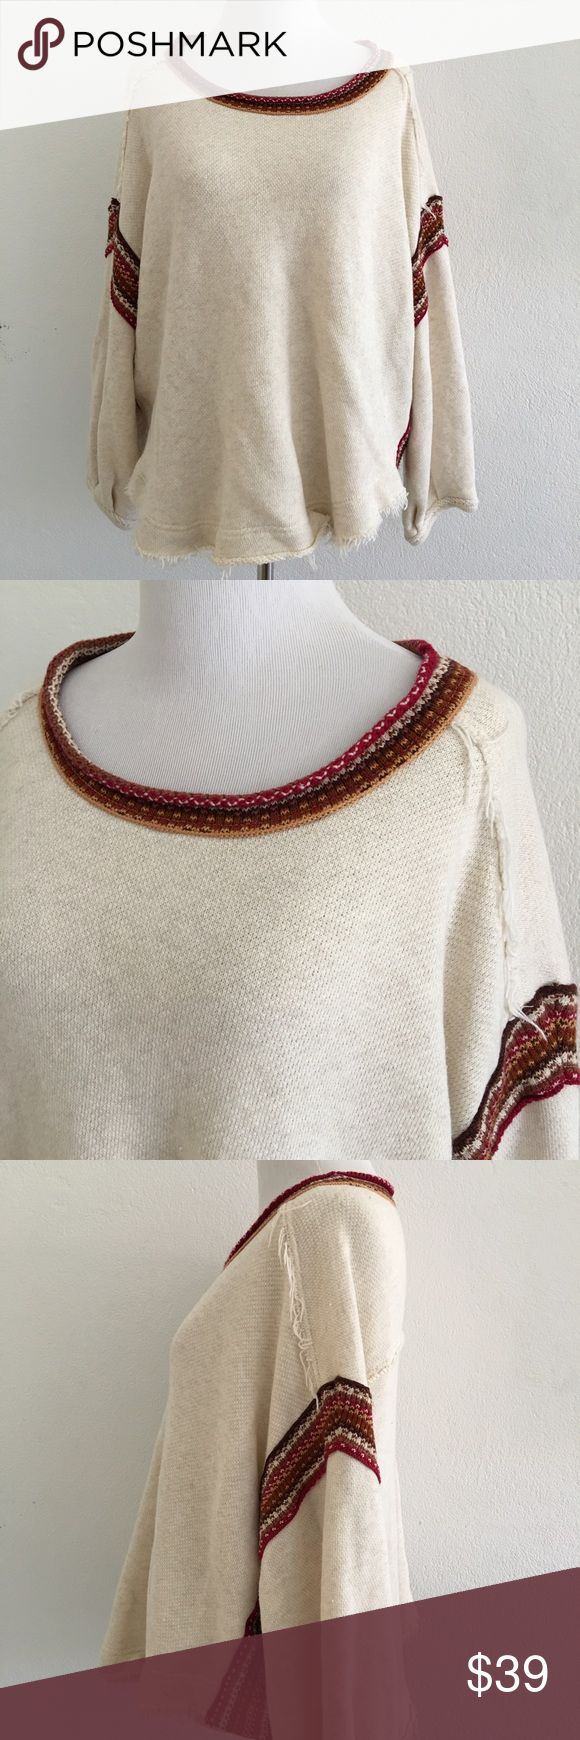 Free People Swing Poncho Aztec Blouse Size M Pre-owned authentic Free People Swing Poncho Aztec Blouse Size M. Long sleeve. Please look at pictures for better reference. Happy Shopping! Free People Tops Blouses